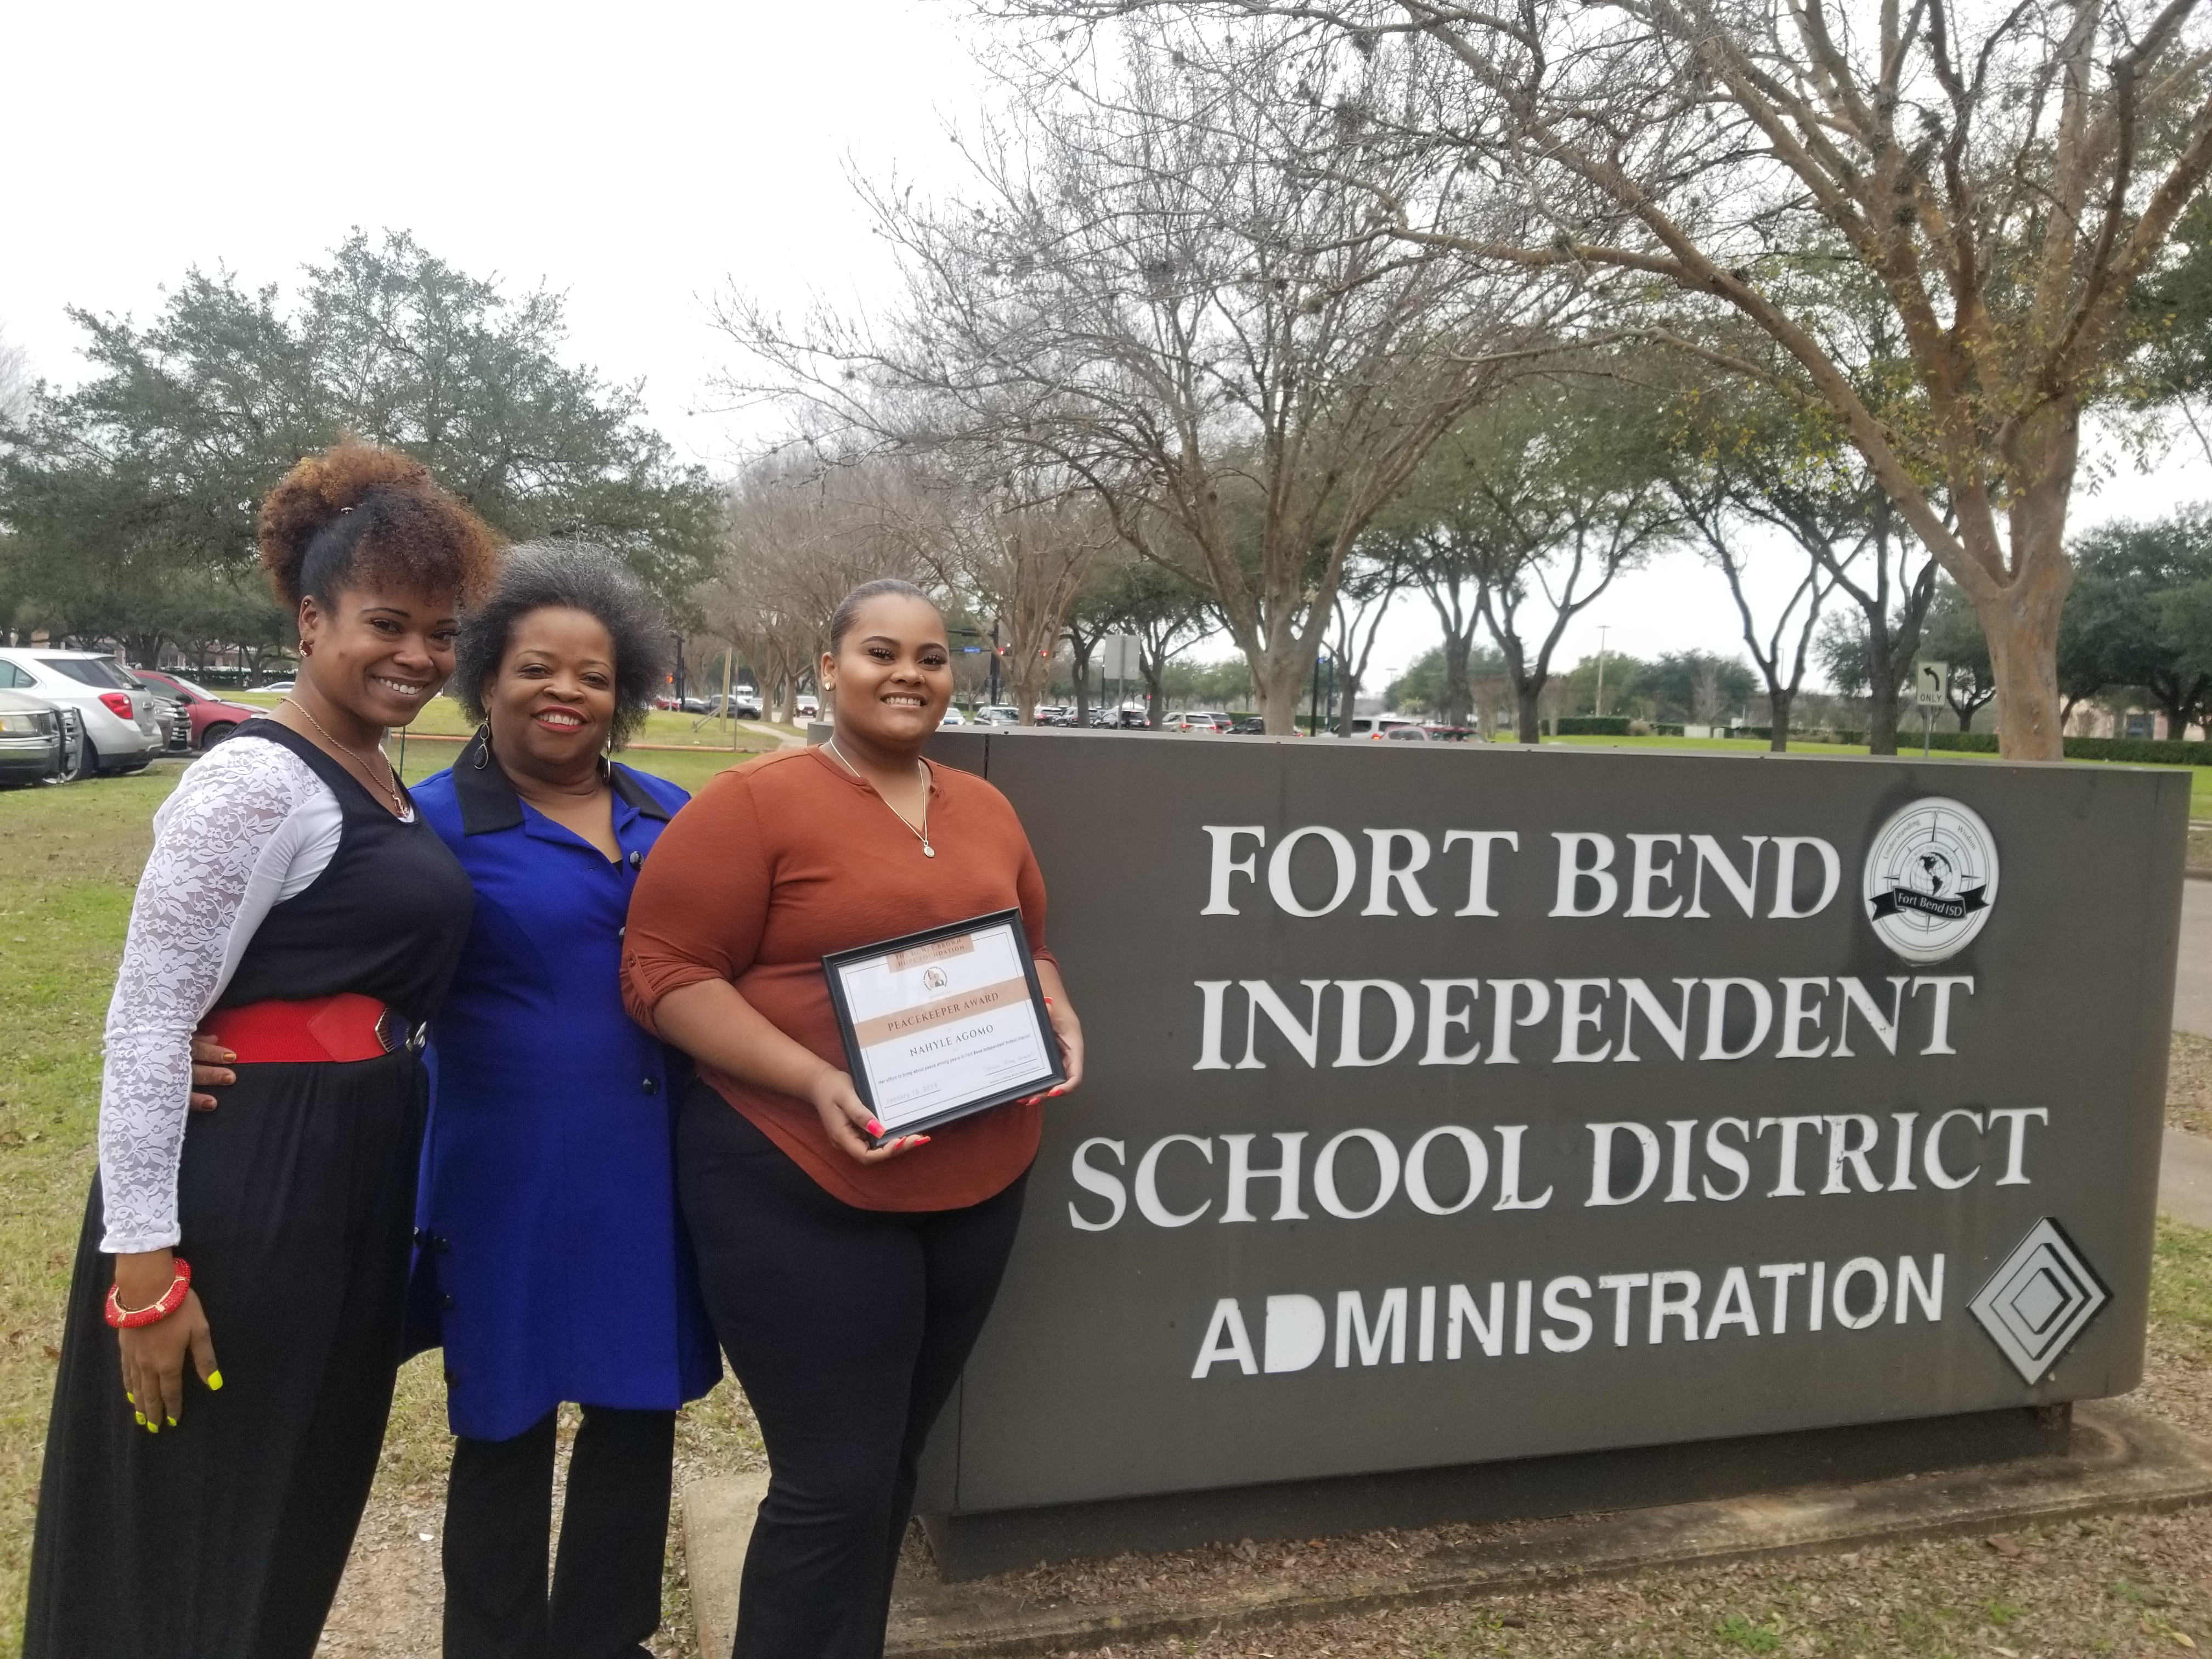 Teen honored as activist works to raise awareness about Fort